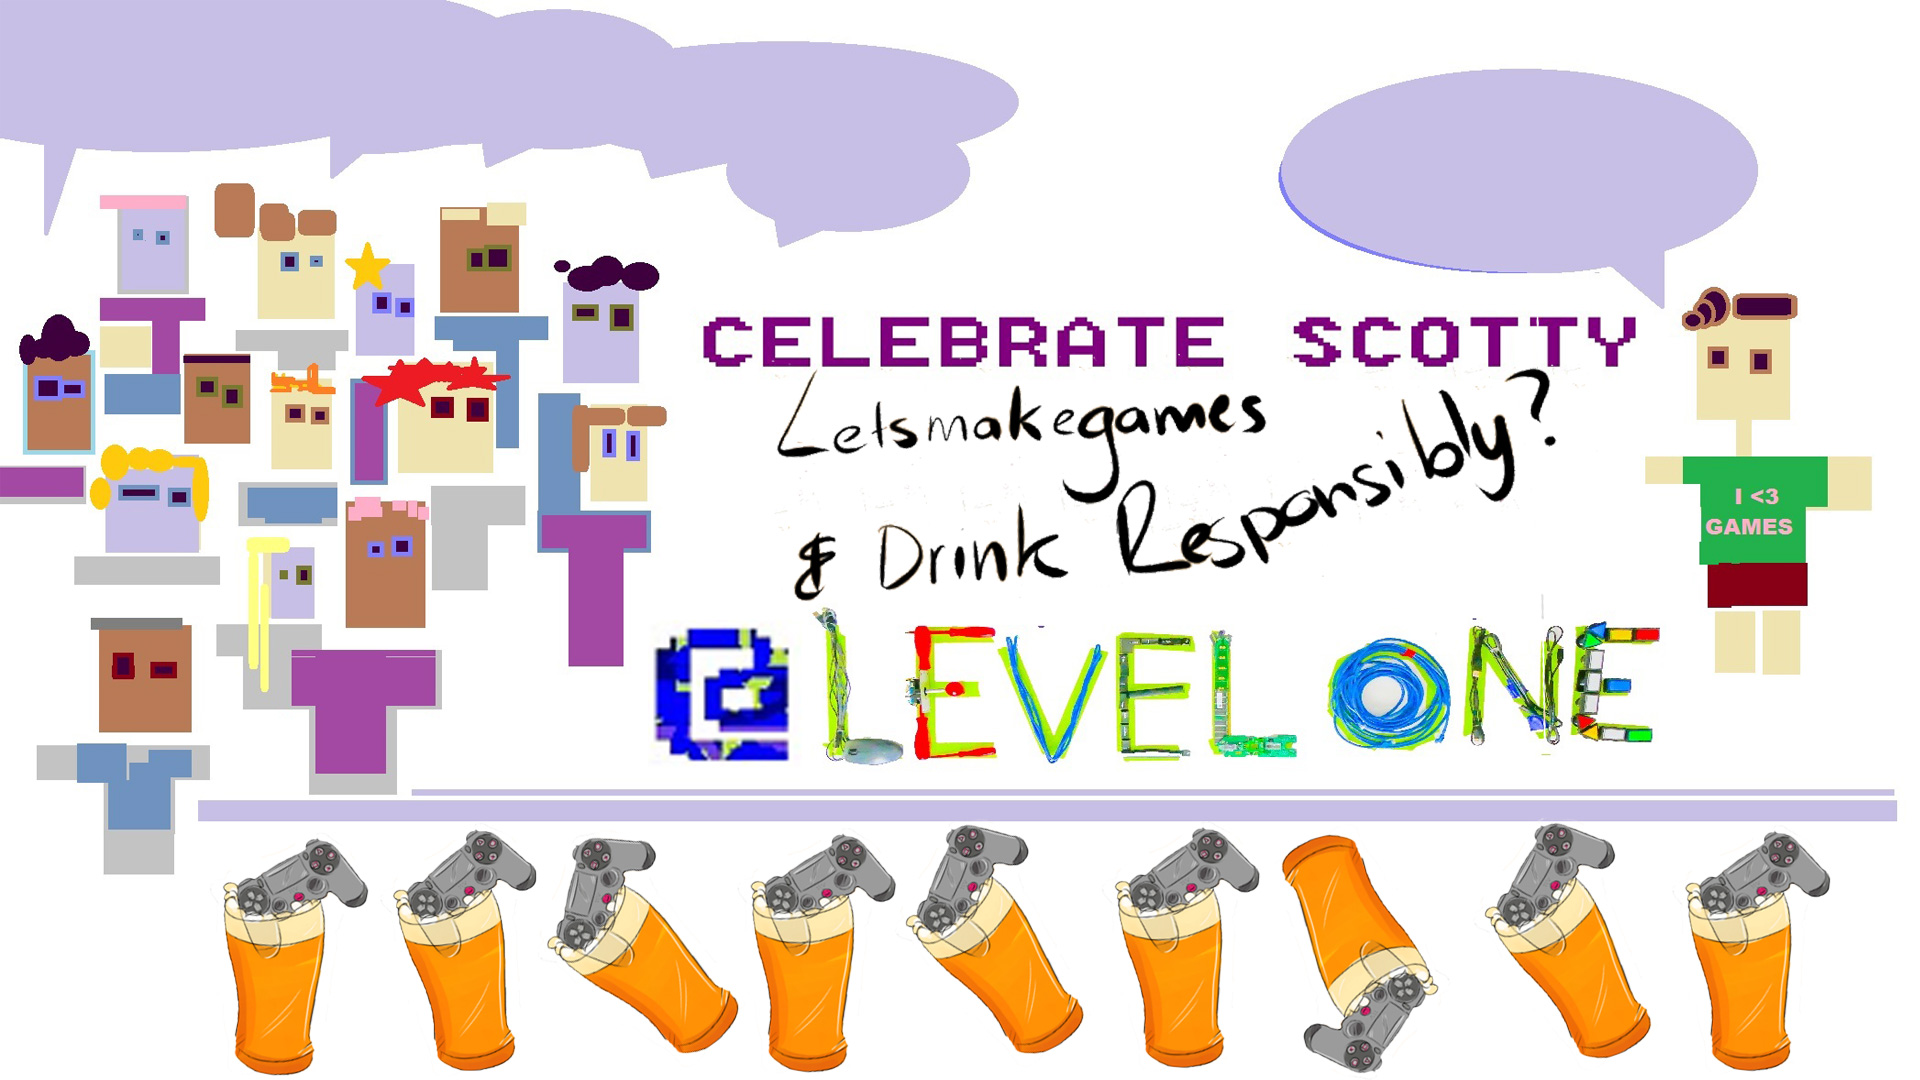 "A cartoon image of a crowd standing in front of Scot Ludlam, who is wearing a green shirt that says ""I heart games"". In the foreground is a border of game controllers and beers. Text reads ""Celebrate Scotty. Lets Make Games & Drink Responsibly? @ Level One"". Url links to the relevant facebook event page."